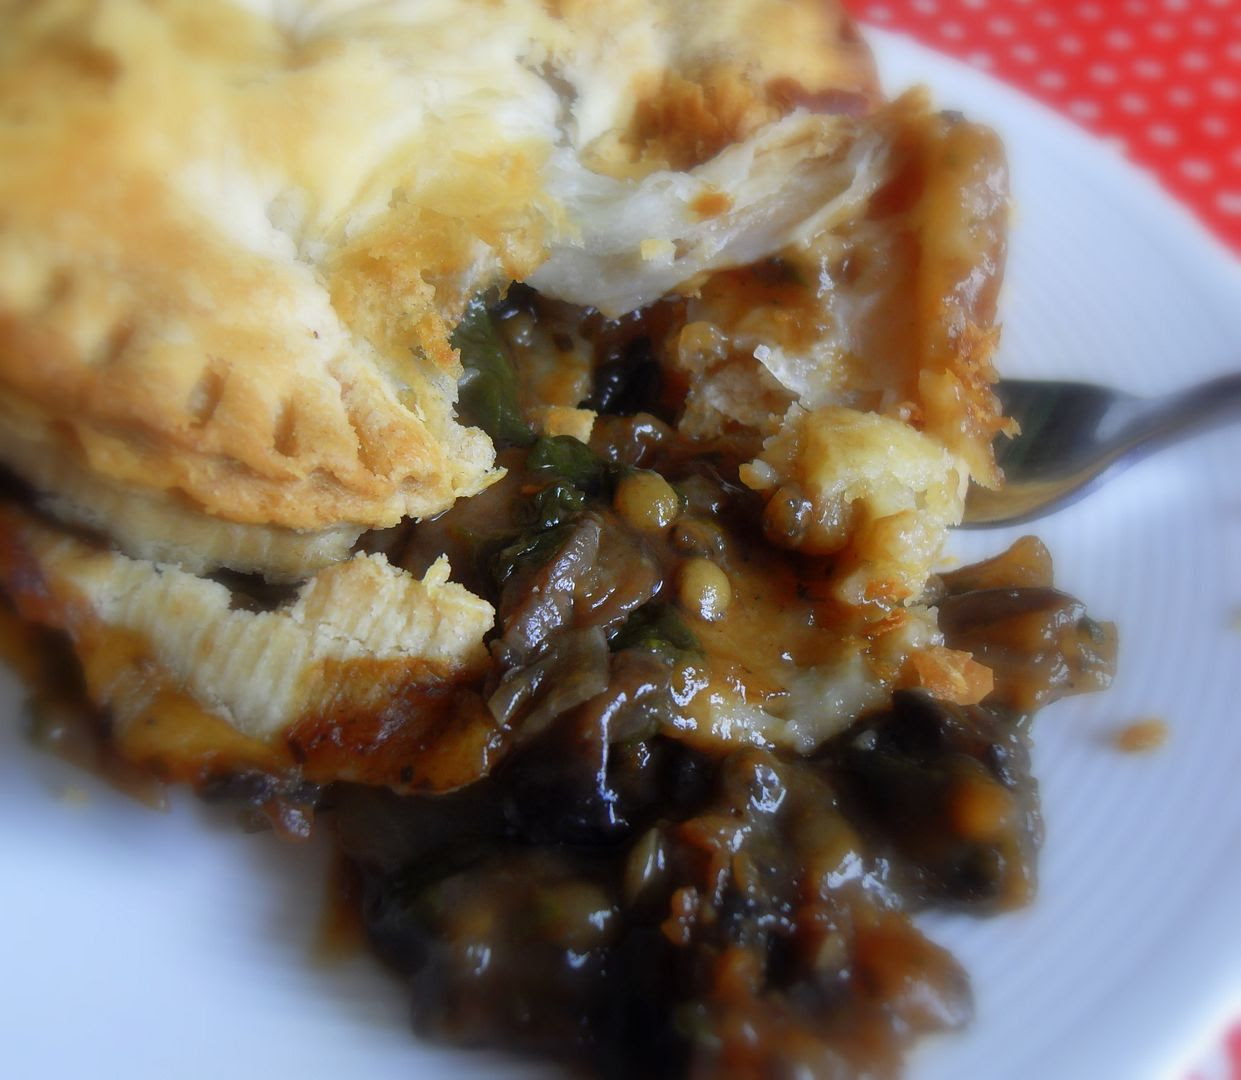 The English Kitchen: Vegetarian Mushroom & Ale Pies to die for